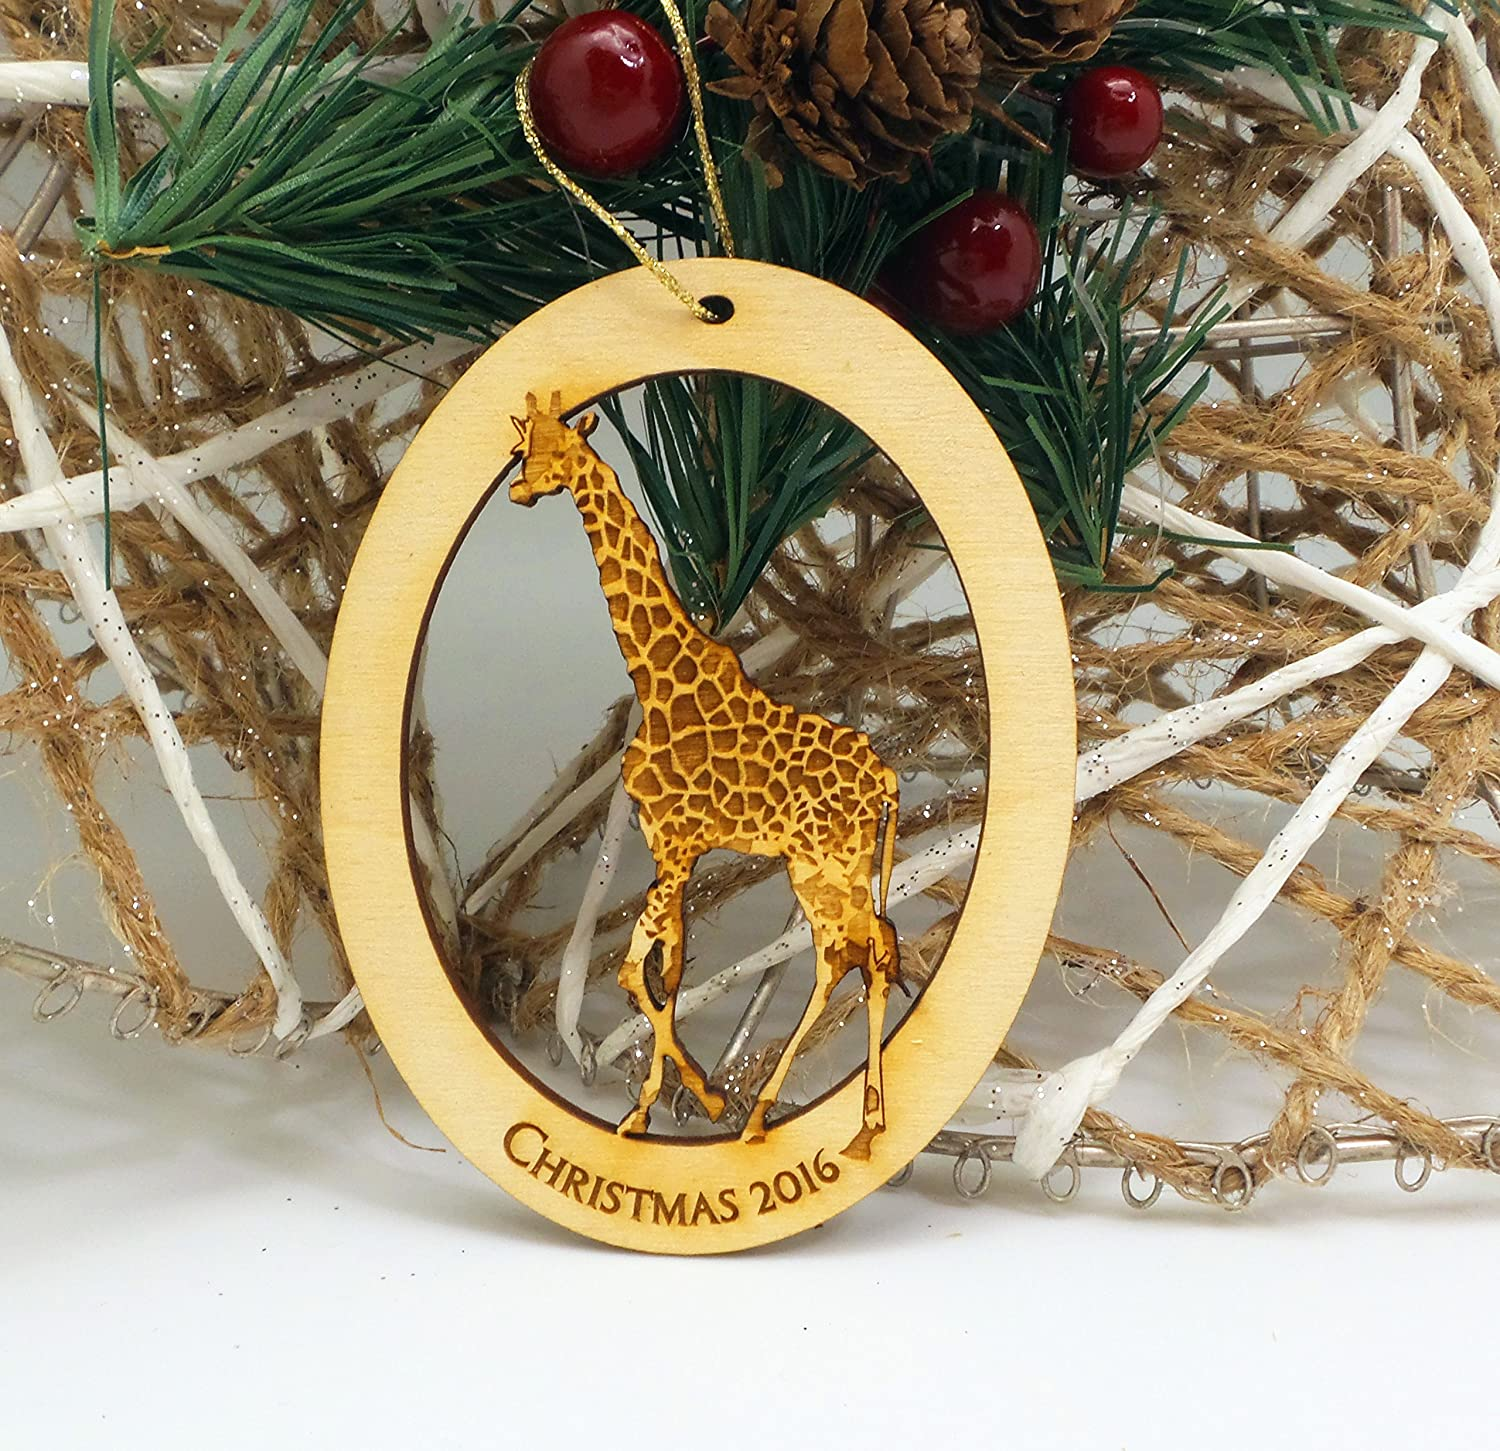 Amazon.com: GIRAFFE Ornament - Giraffe Christmas Ornament ...